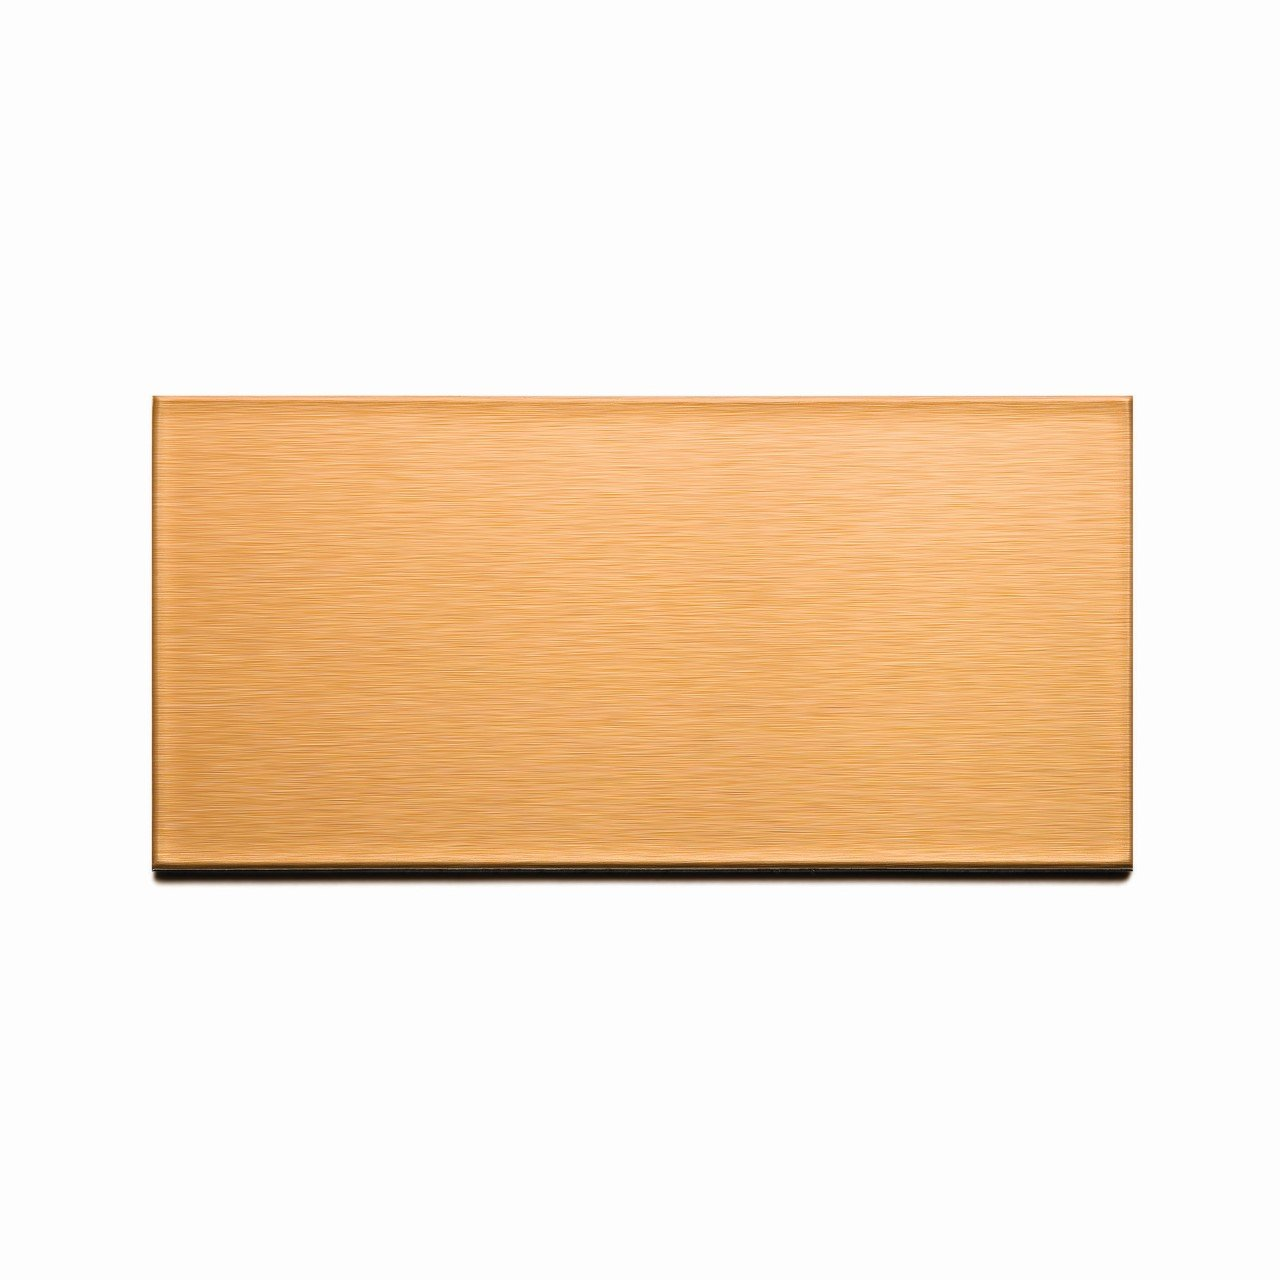 Aspect Peel and Stick Backsplash 3in x 6in Brushed Copper Long Grain Metal Tile for Kitchen and Bathrooms (8-pack) by Aspect